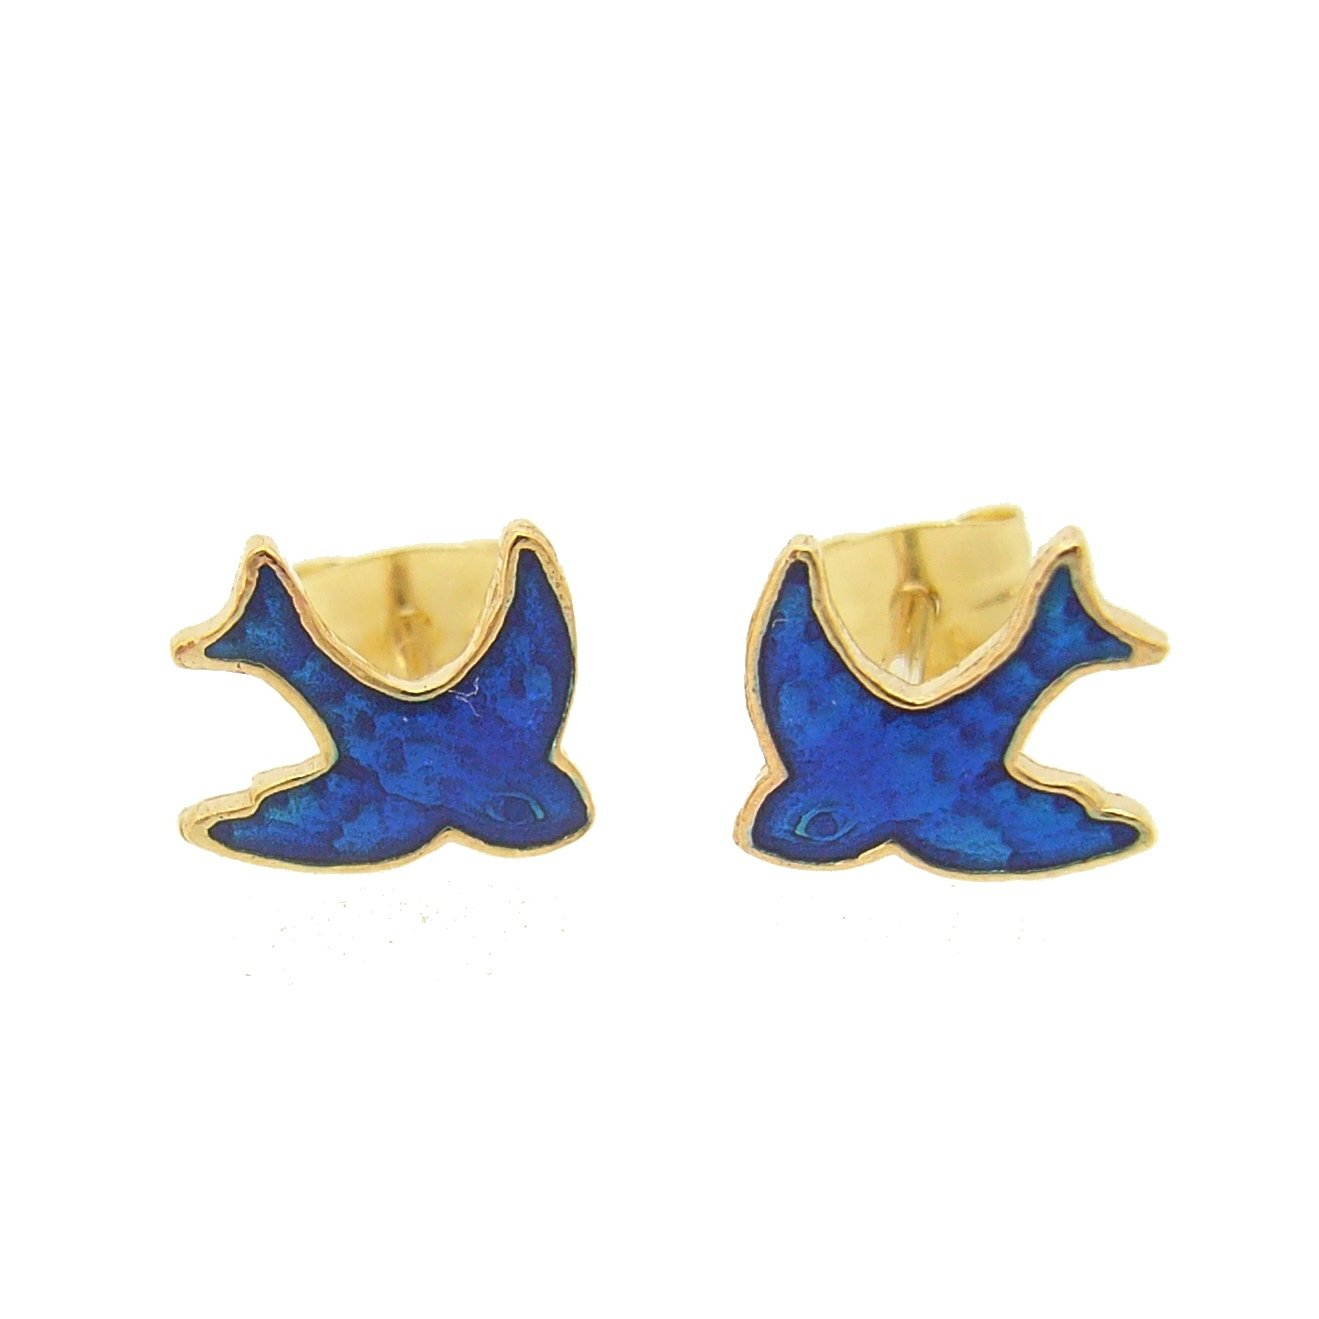 Bluebird of Happiness Charm Stud Earrings in 9ct Gold